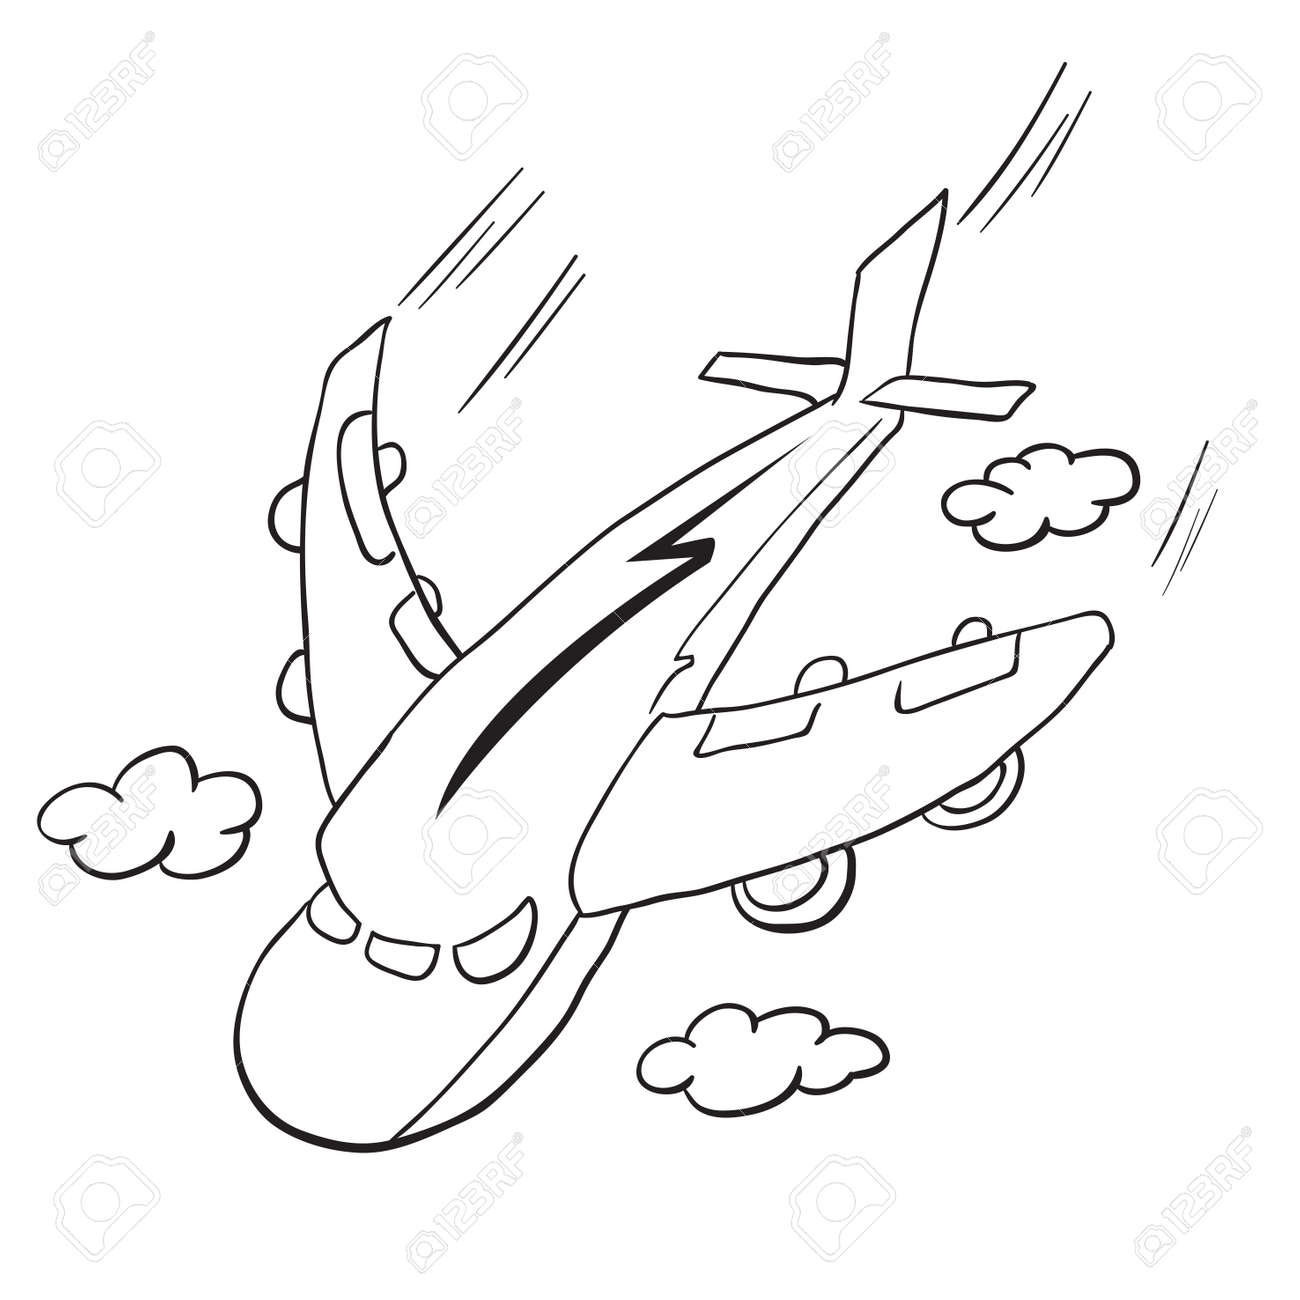 Simple Voler Dessin Anime Avion Noir Et Blanc Clip Art Libres De